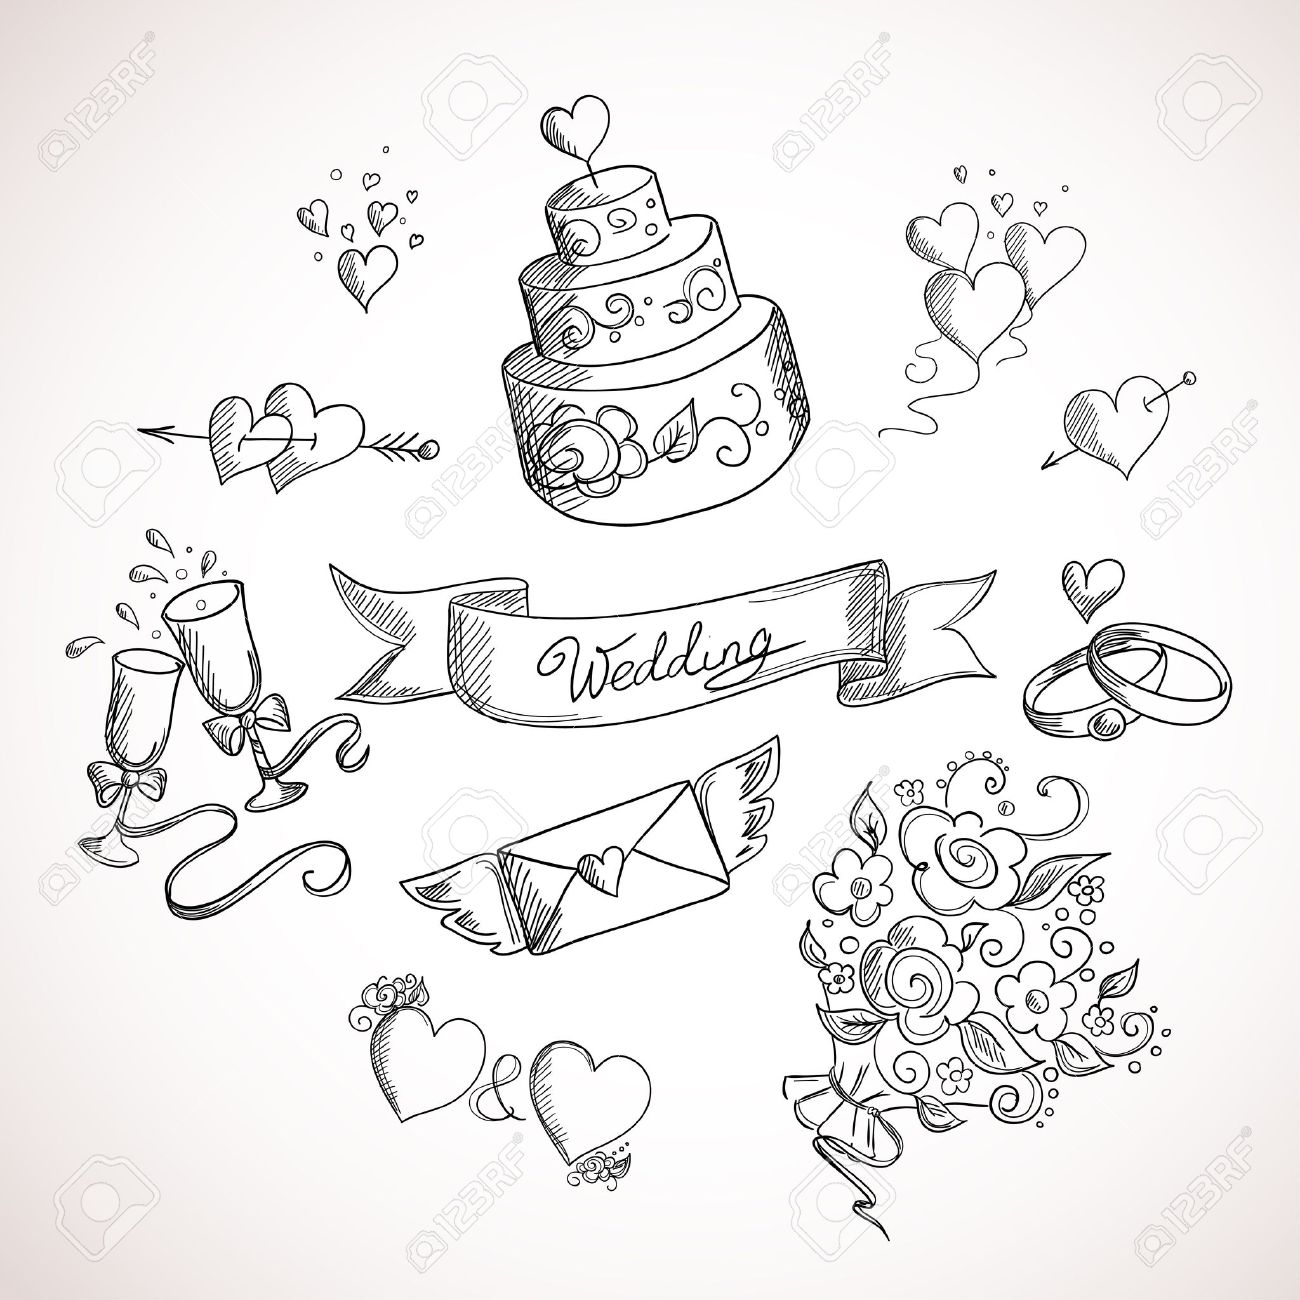 Sketch of wedding design elements. Hand drawn illustration Stock Vector - 21791605